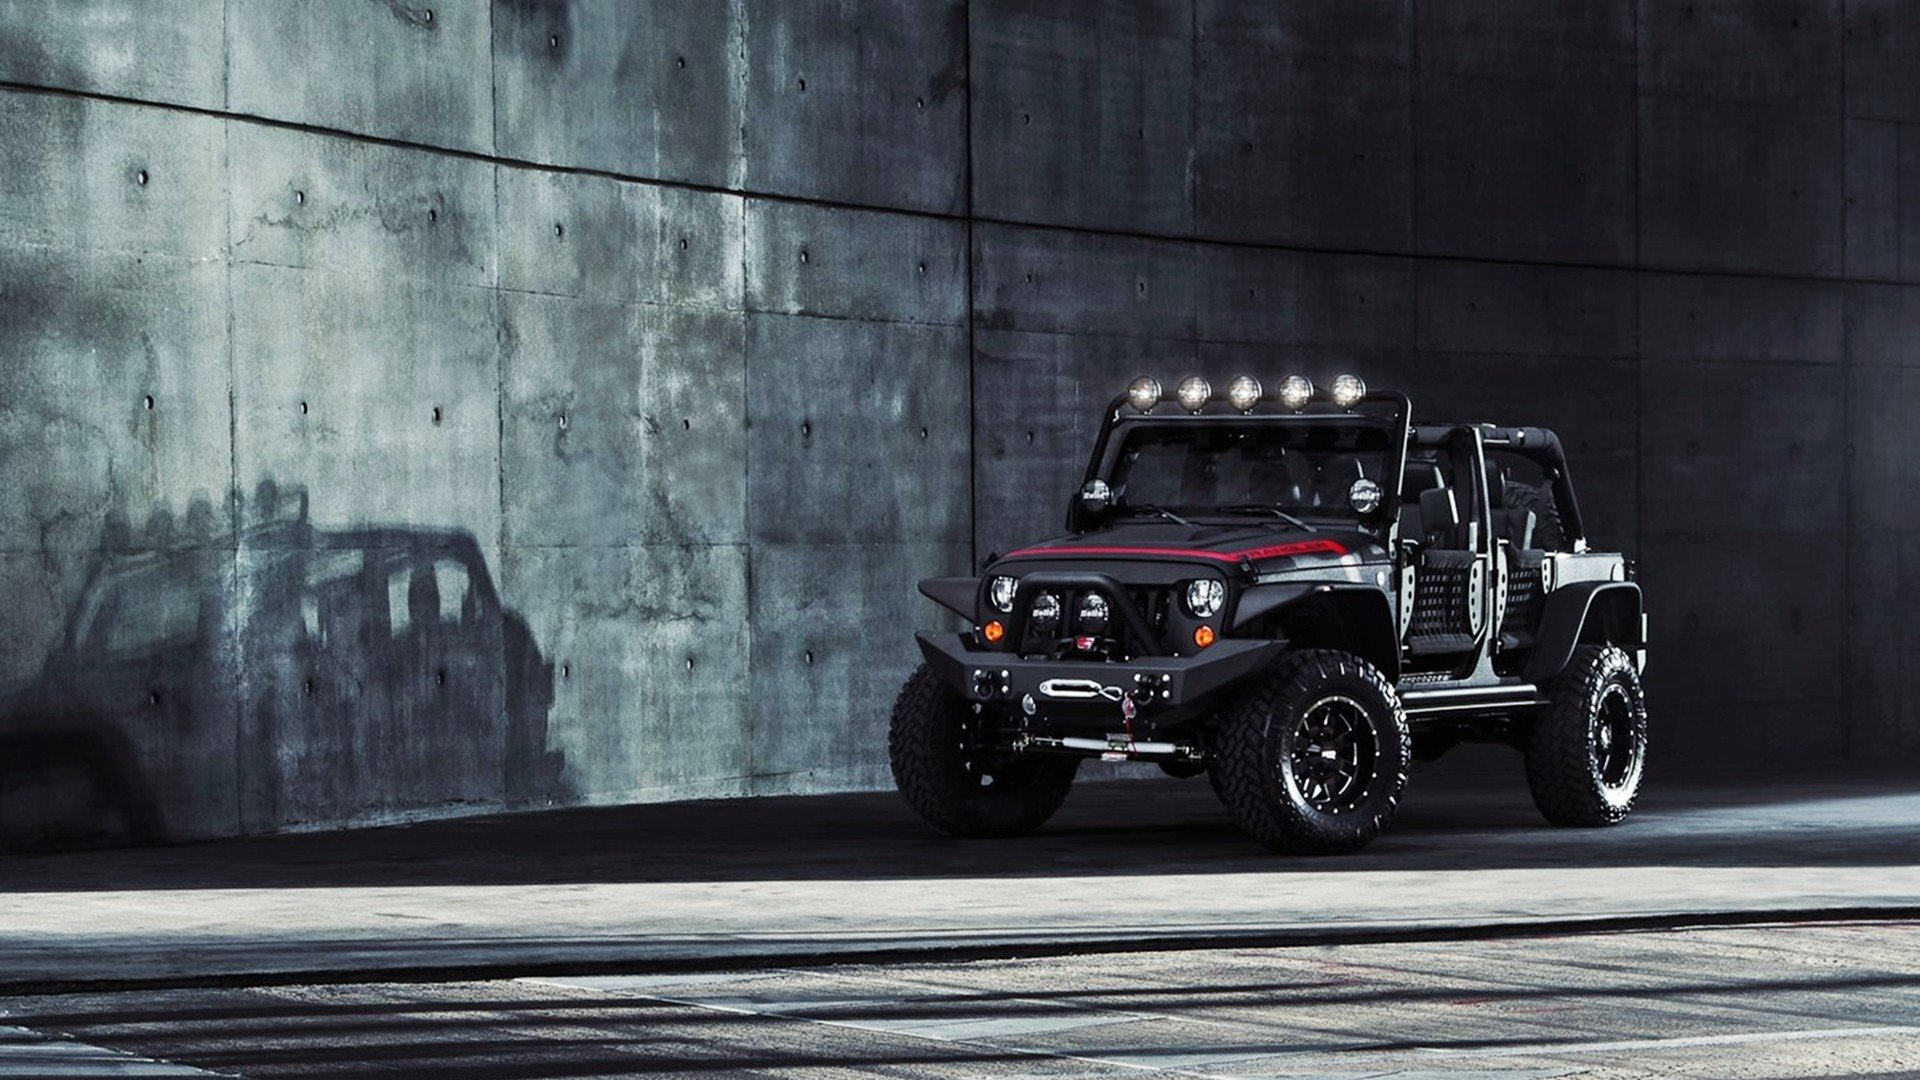 156 jeep hd wallpapers | background images - wallpaper abyss